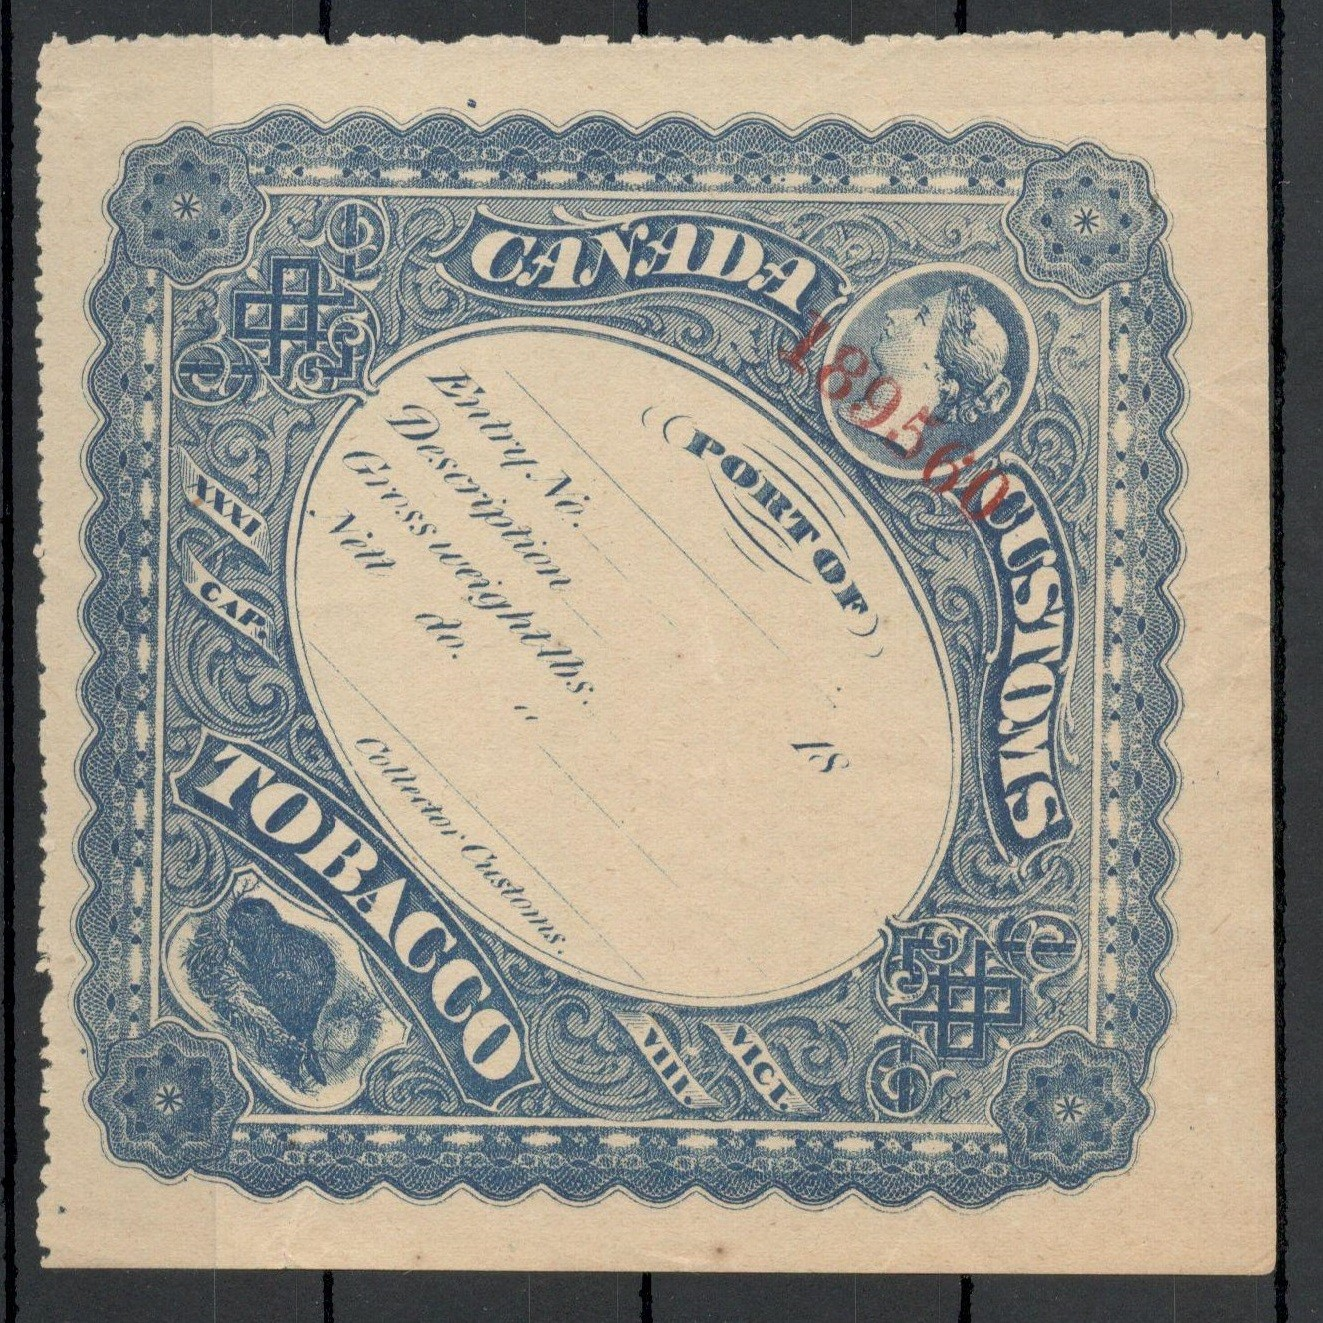 CANADA CUSTOMS TOBACCO ENTRY LABEL - Image 2 of 4